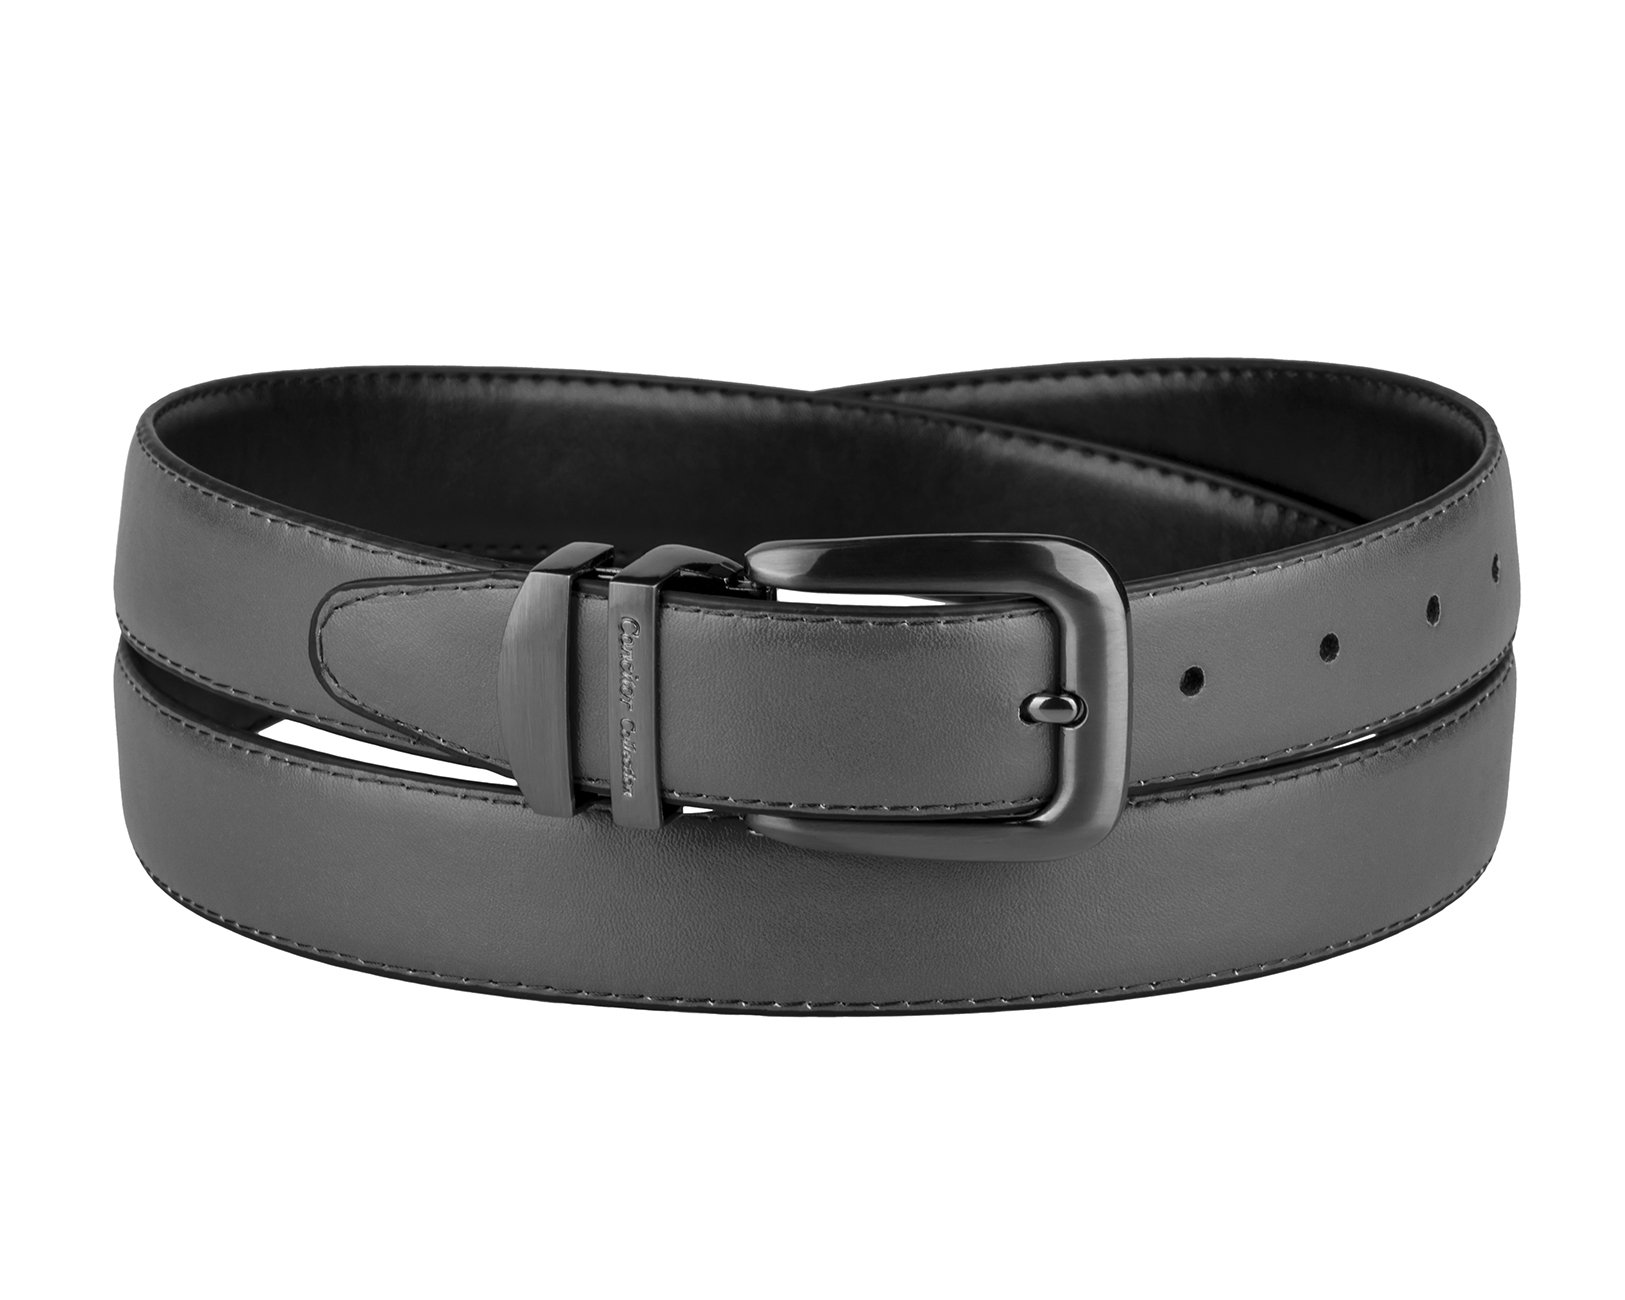 CONCITOR Reversible Belt CHARCOAL GREY Black Bonded Leather Pewter-Tone Bckle 34